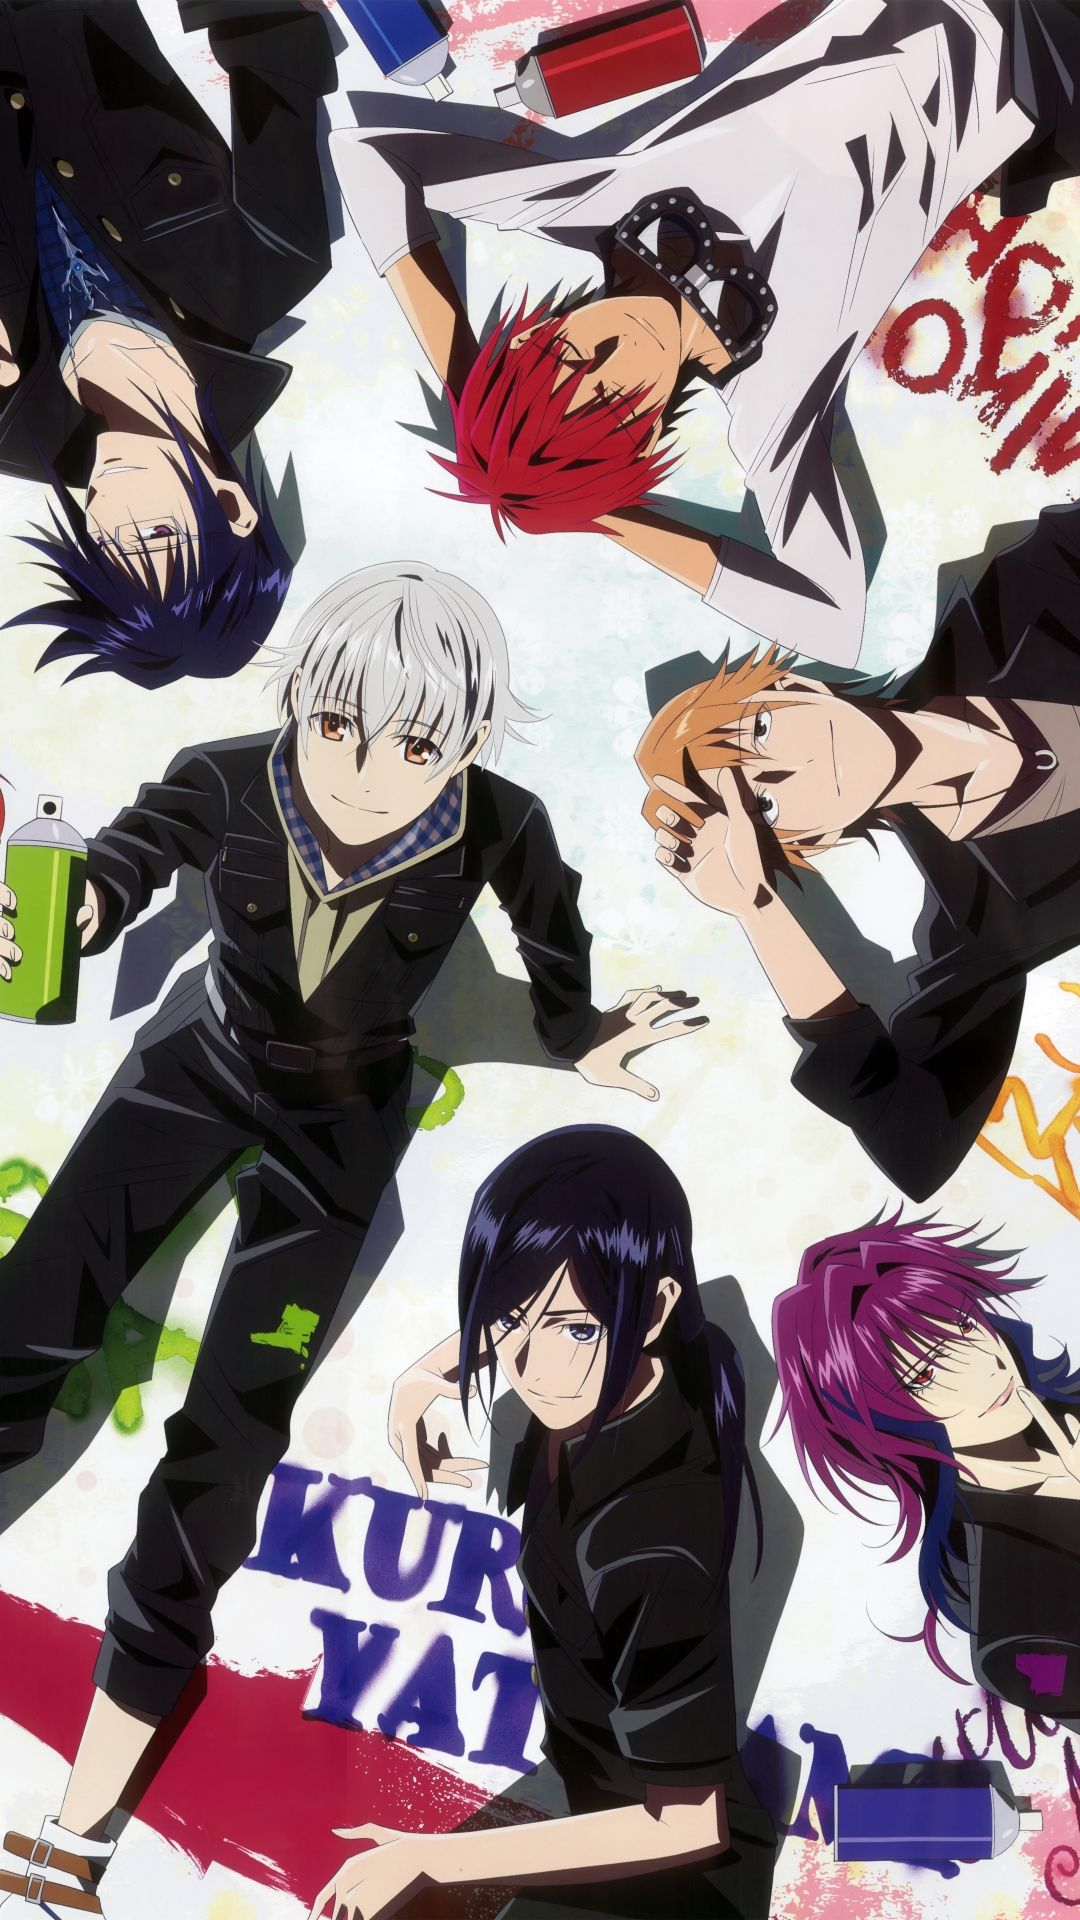 Pin By Oh Rere On K Project K Project K Project Anime Anime